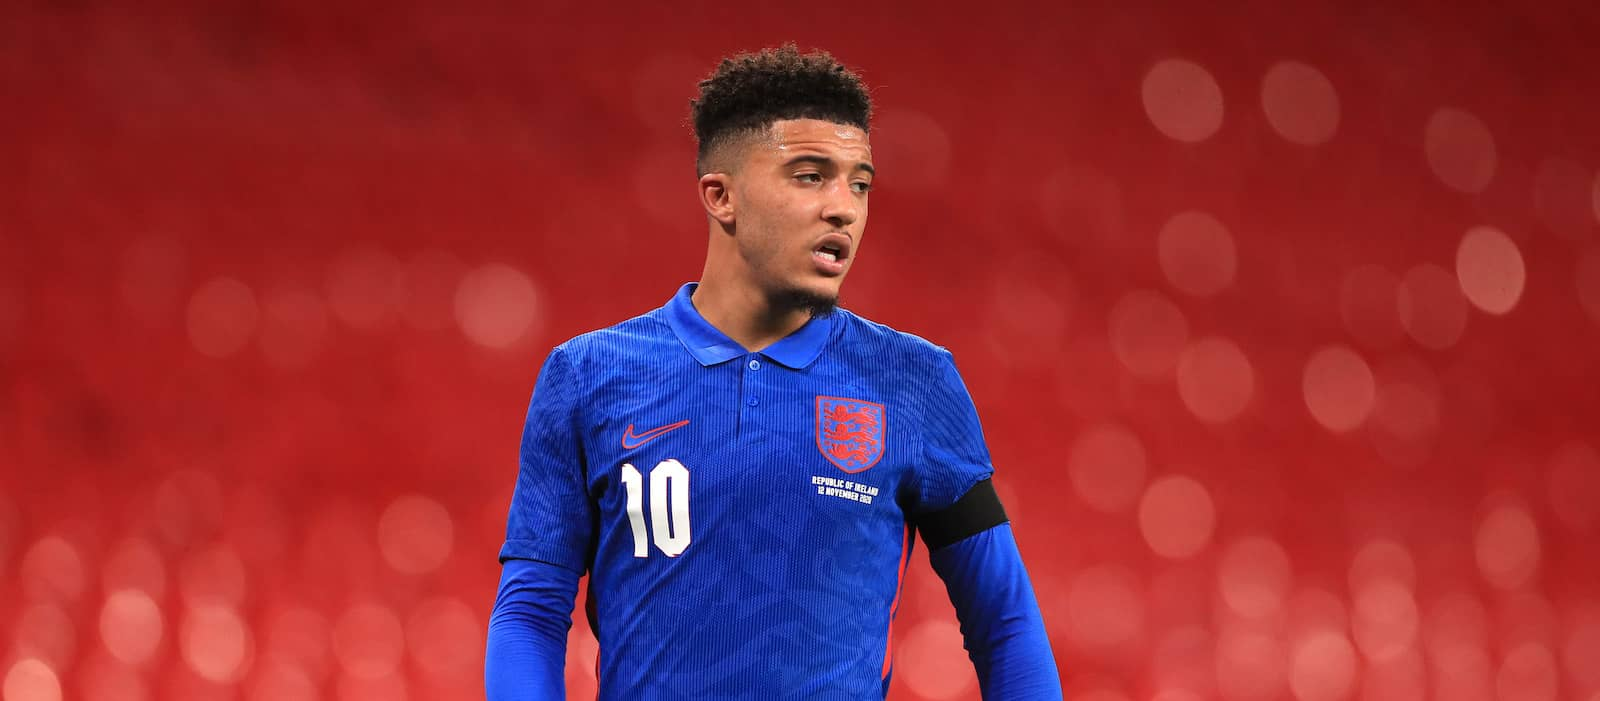 Man United were never in for Jadon Sancho this summer